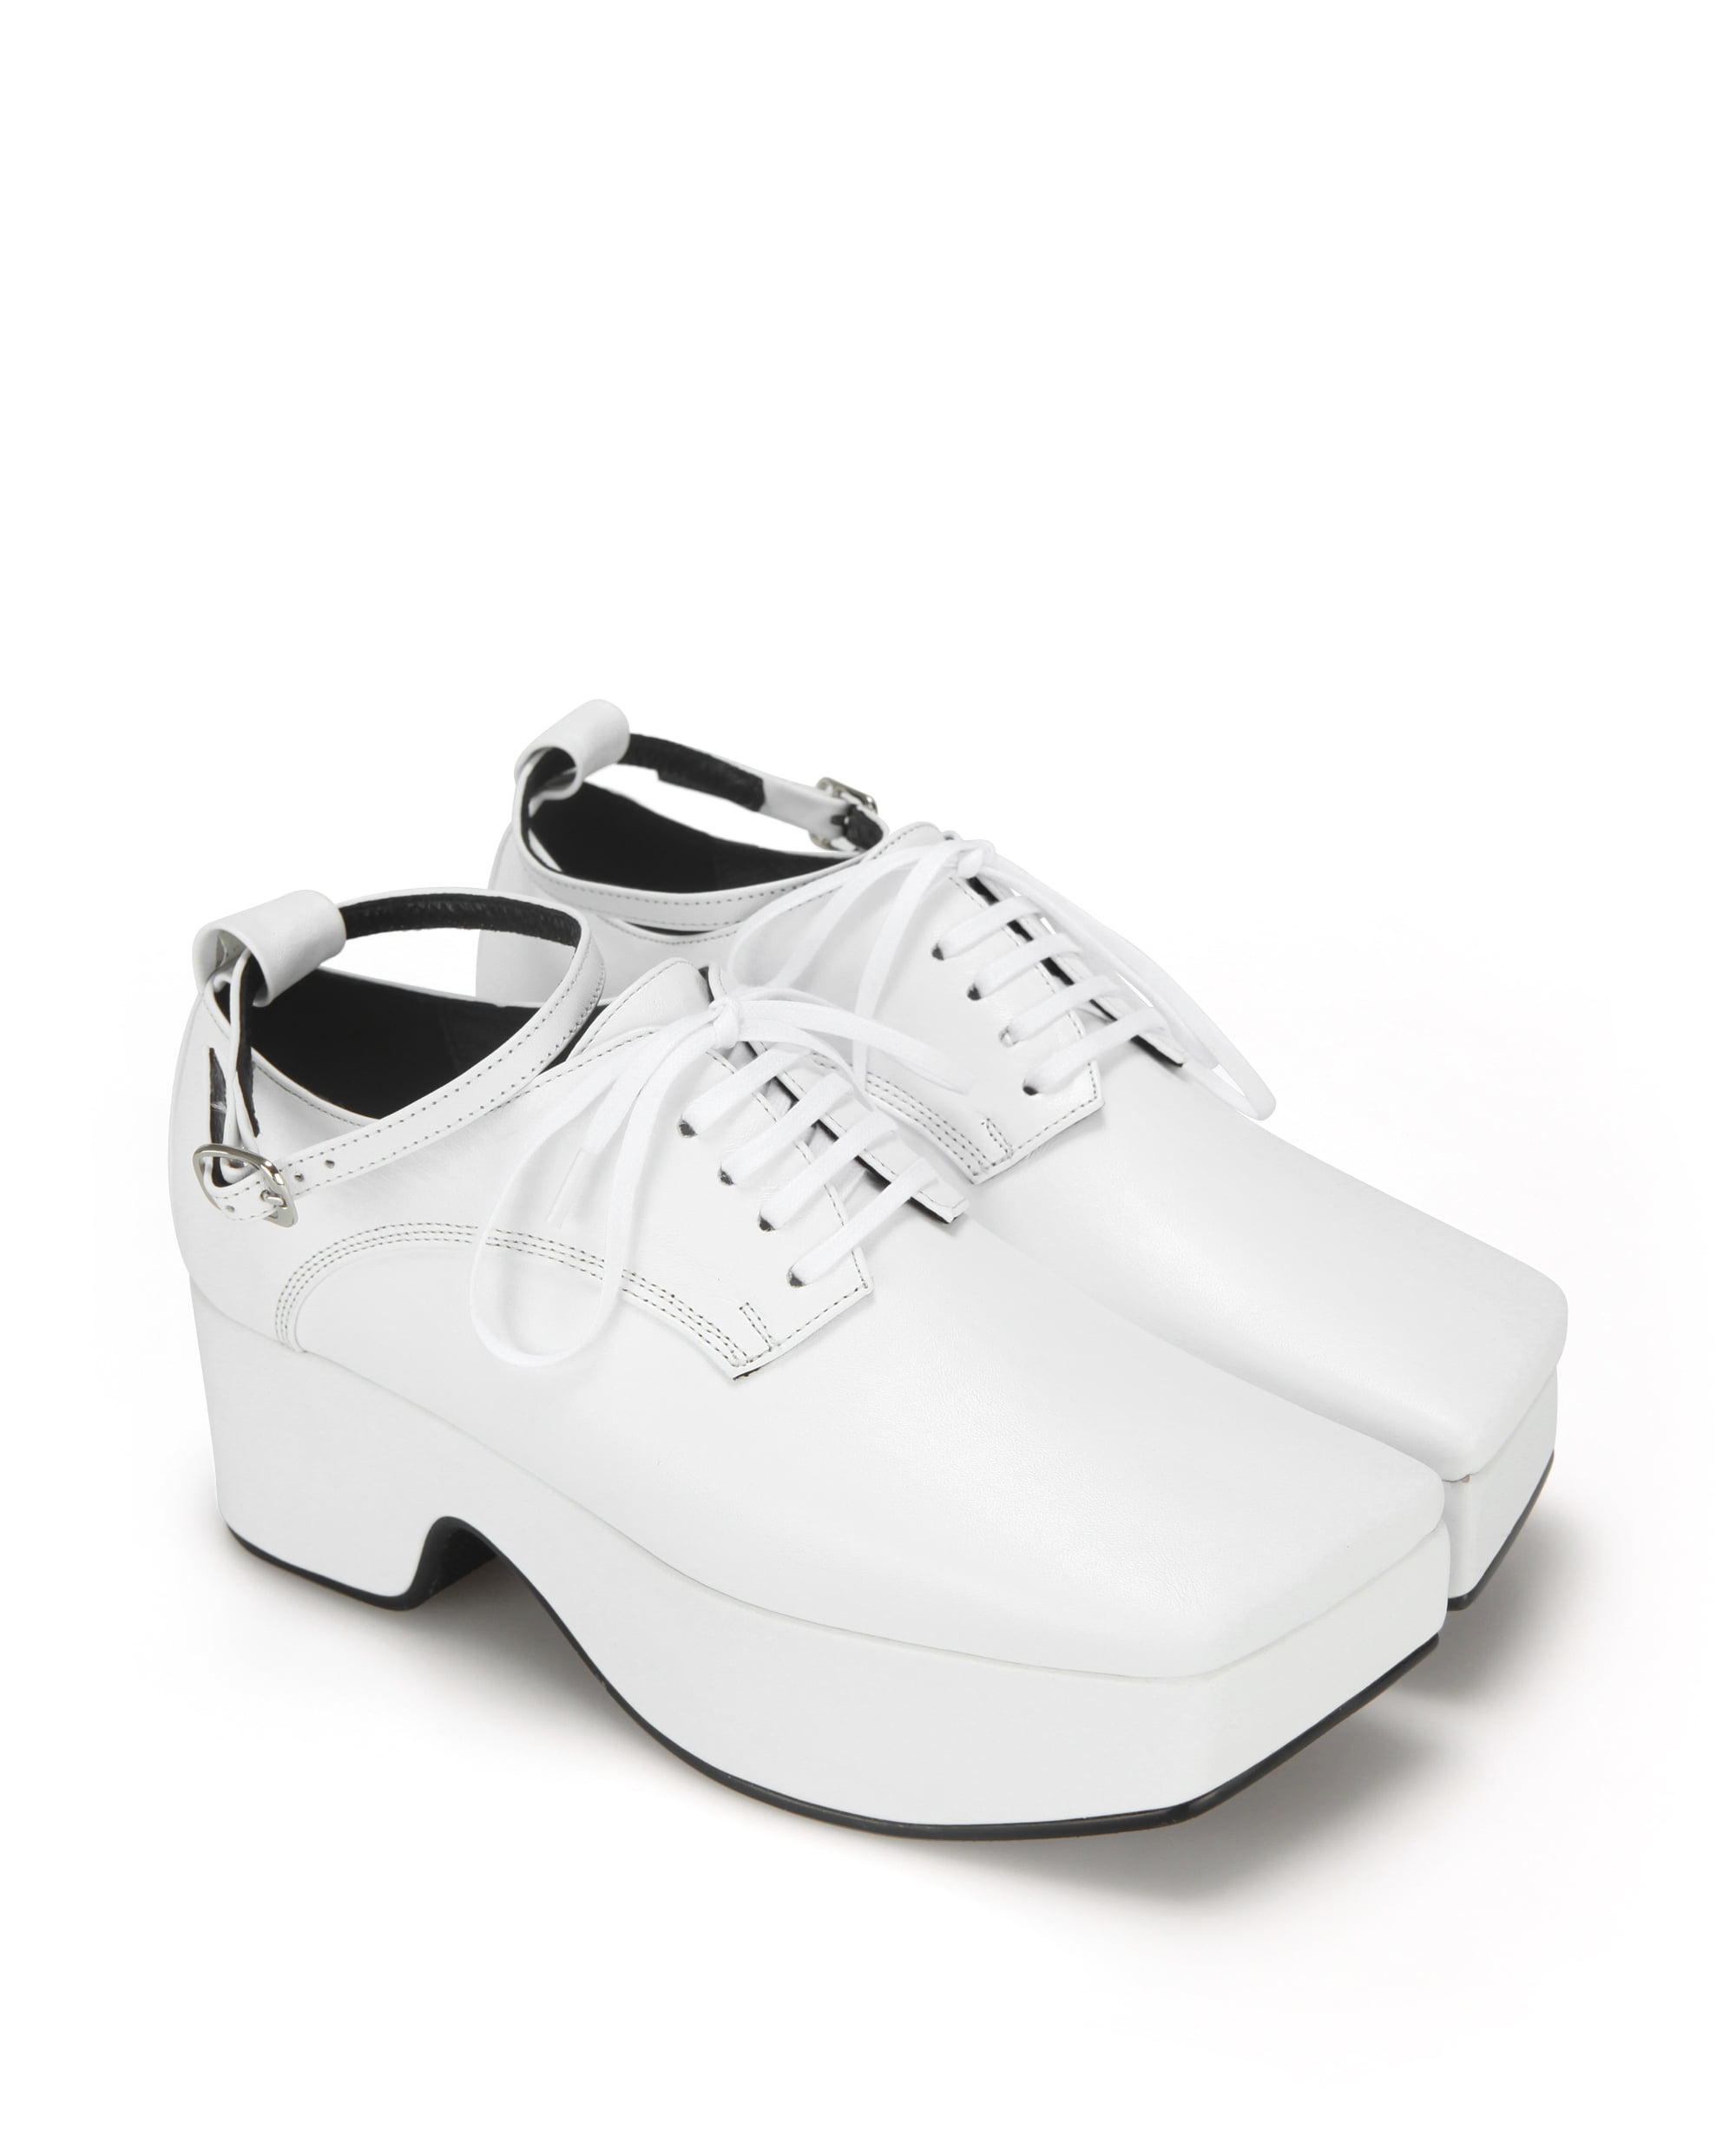 Squared toe derby platforms (+ball chain) | white